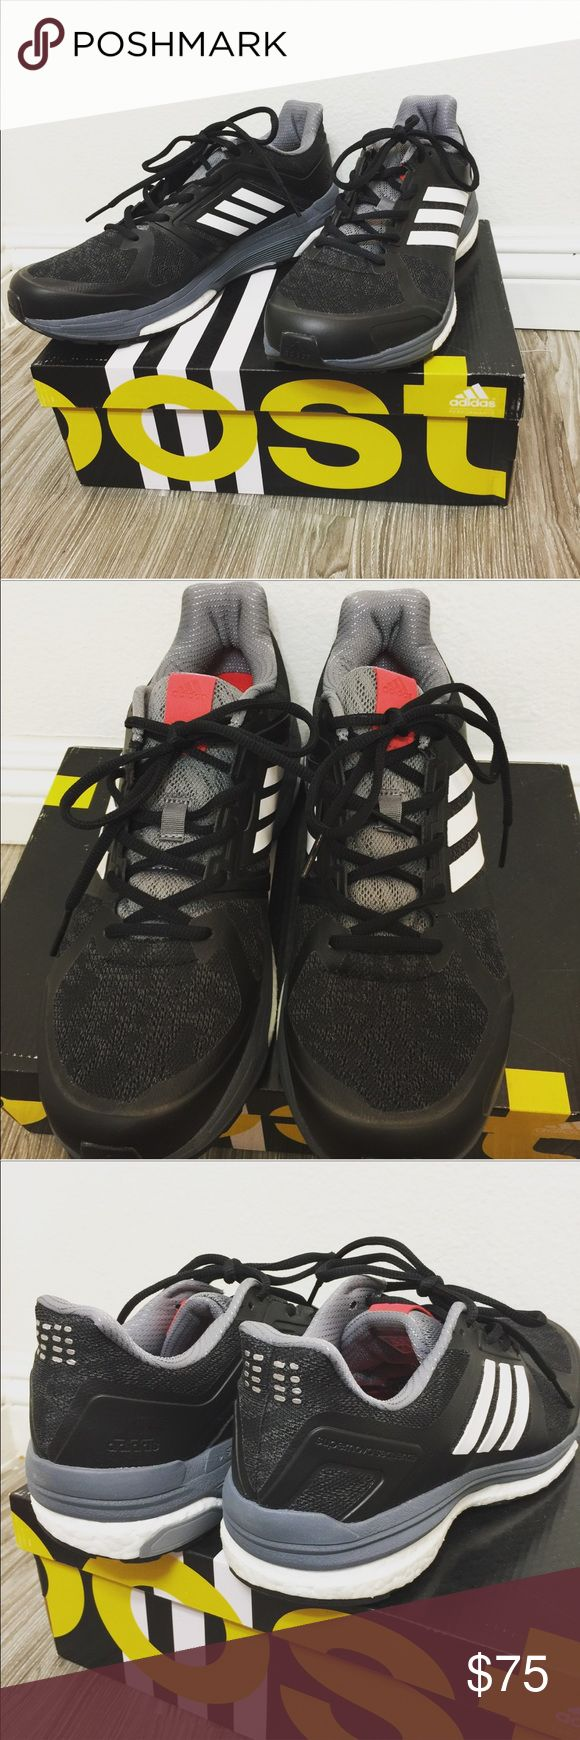 NEW Adidas Boost technology Supernova Sequence 9 Never been used Adidas Supernova Sequence 9 with midsole Boost technology. Meant for performance hiking, gym, running, or trail. Adidas Shoes Athletic Shoes